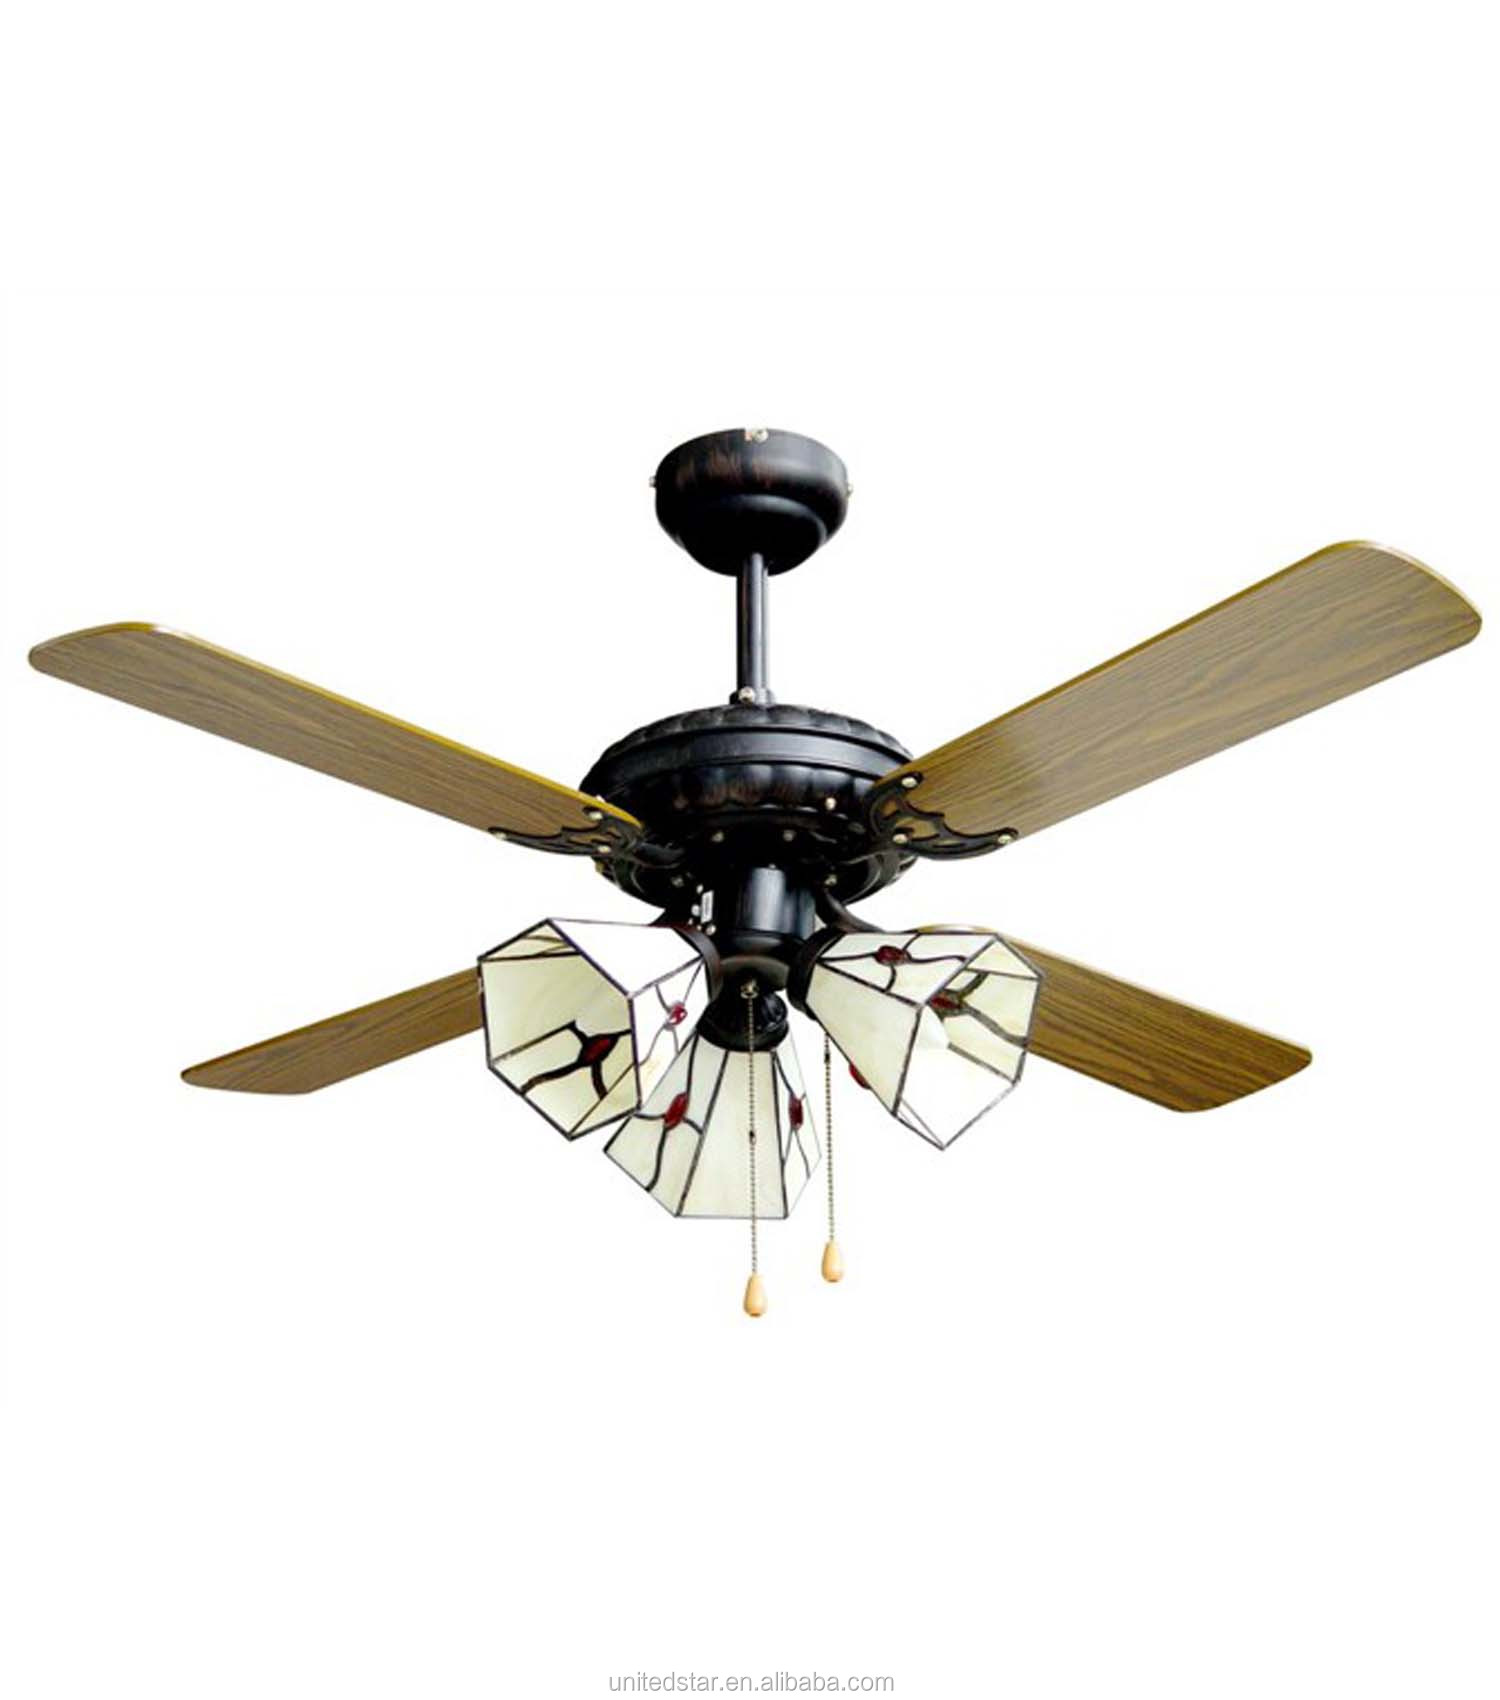 52 Inch Wholesale Decorative Ceiling Fan In Brown Color Buy Orient Ceiling Fan Cheap Ceiling Fans Shami Ceiling Fan Product On Alibaba Com